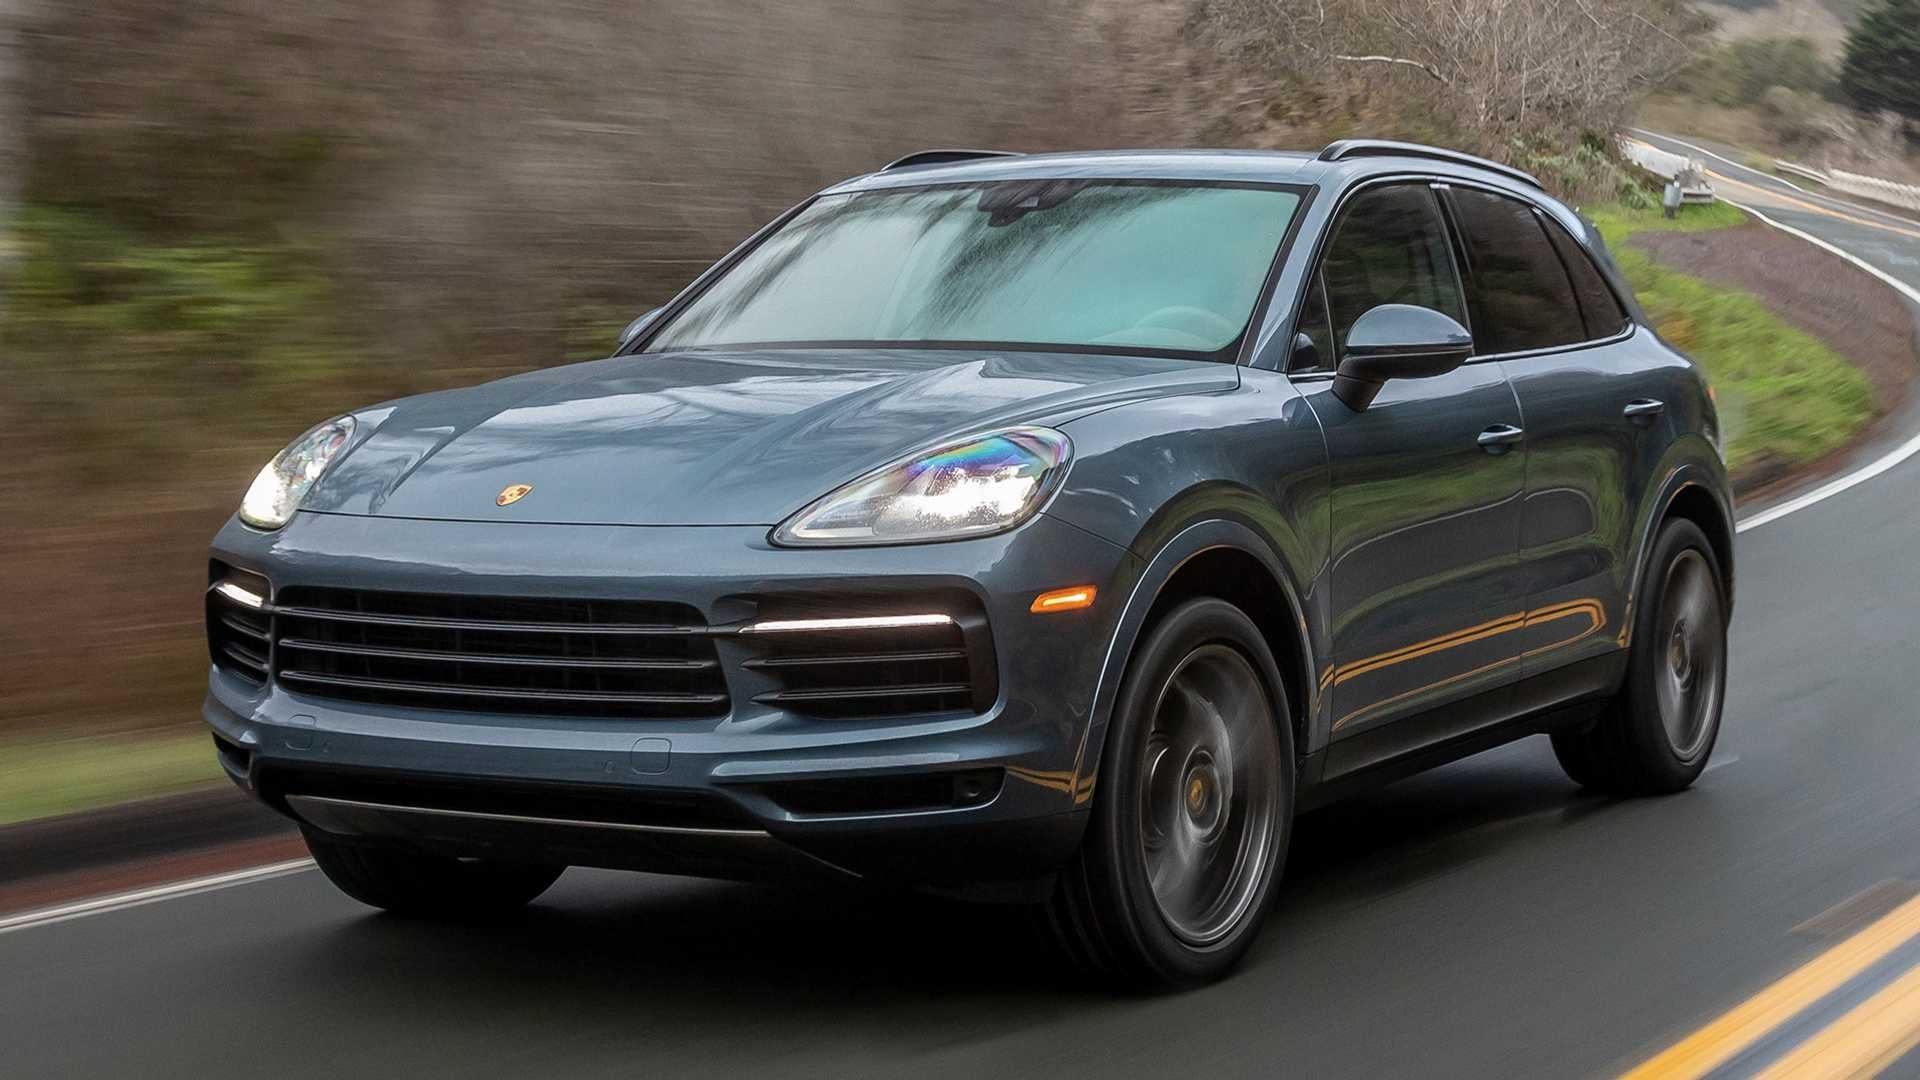 Porsche Cayenne Turbo S E Hybrid Will Be Brand S Most Powerful Suv